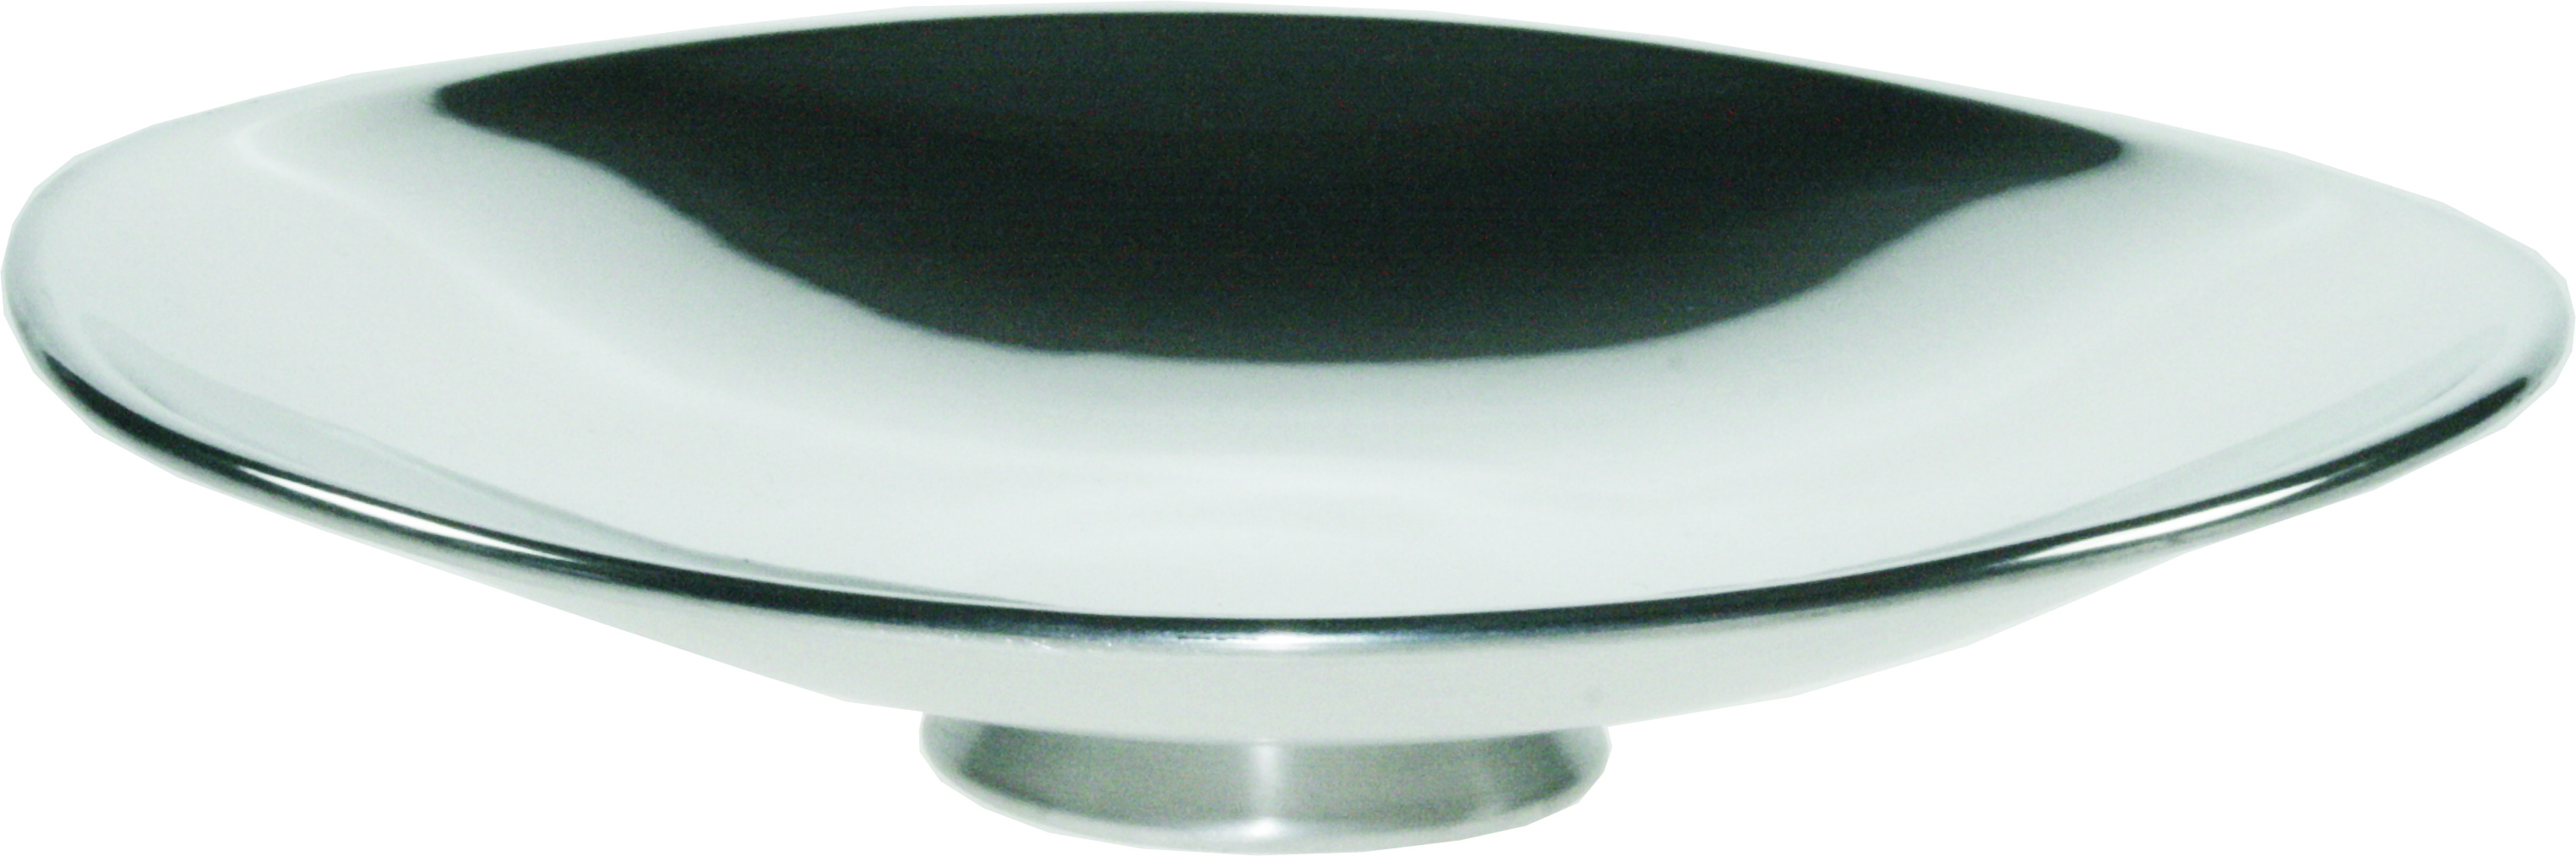 "Plain Shallow Pewter Bowl 21cm (8.25"")"